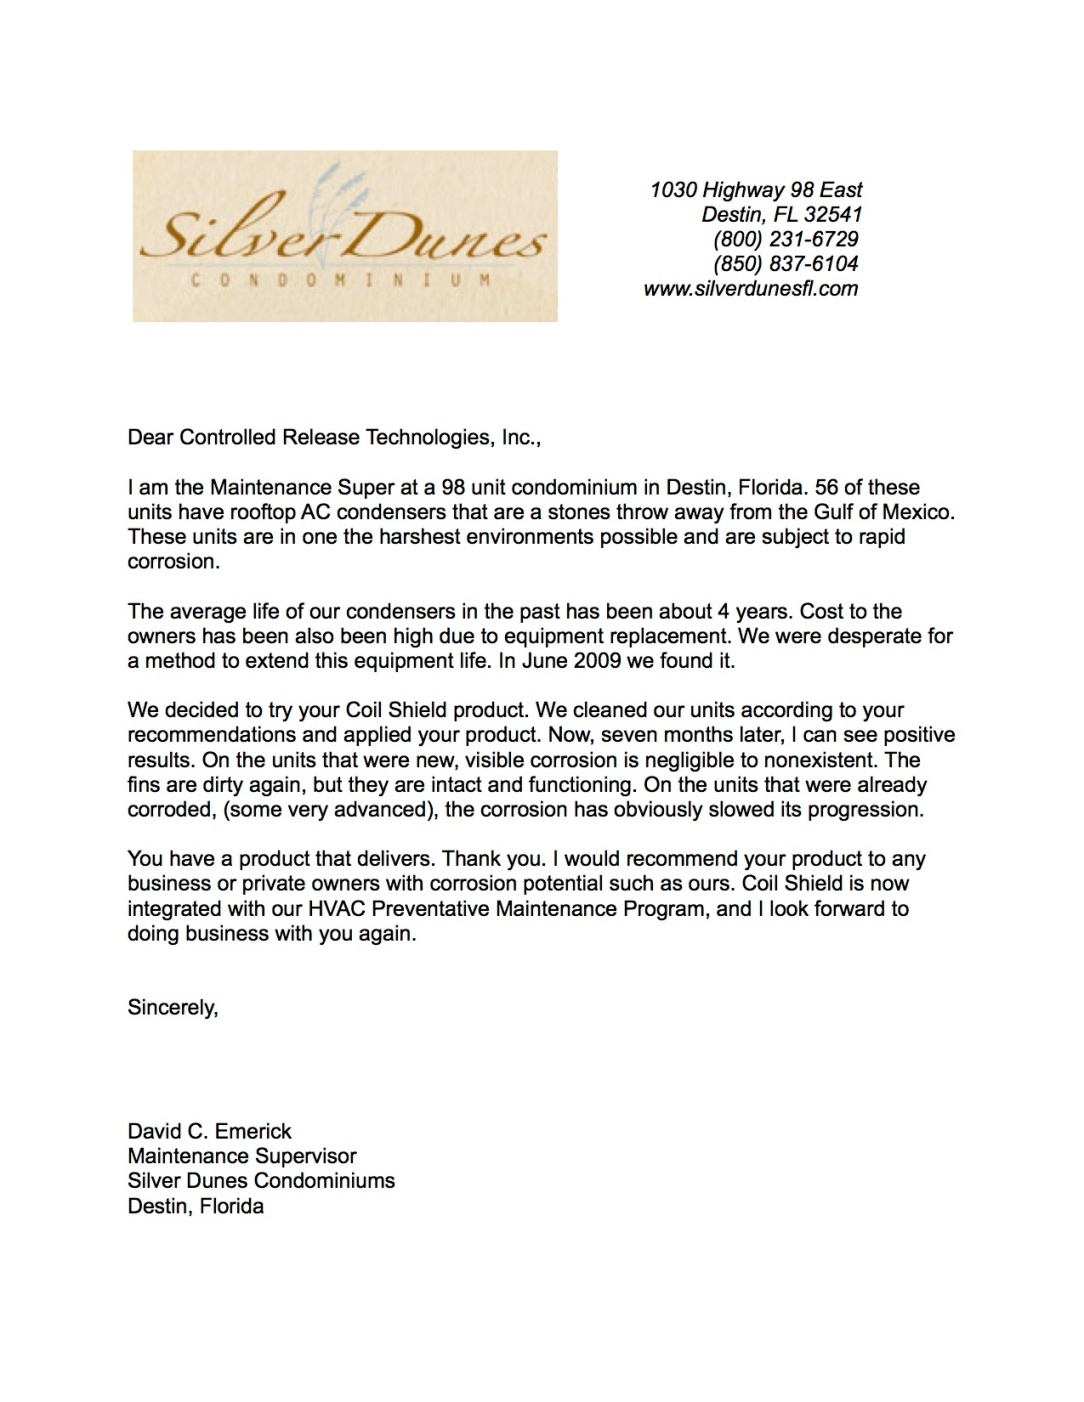 Silver Dunes Condominiums Recommendation